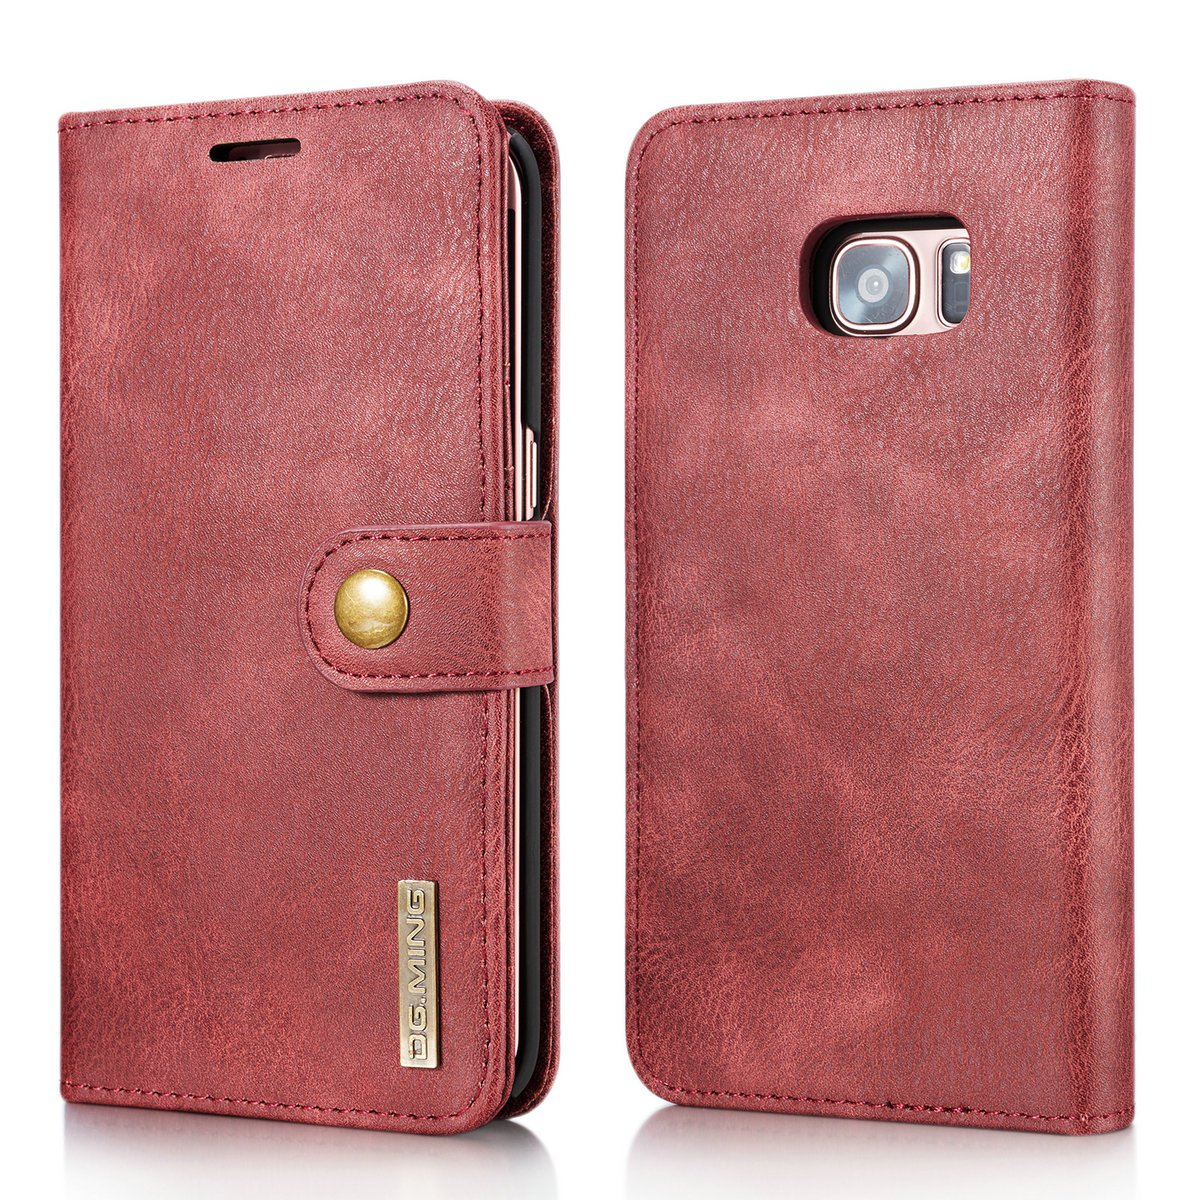 Galaxy S7 Edge Case, DG.MING Retro Cowhide Leather Magnetic Detachable 2 in 1 Wallet Cover Case for Samsung Galaxy S7 Edge (Gray) eReach